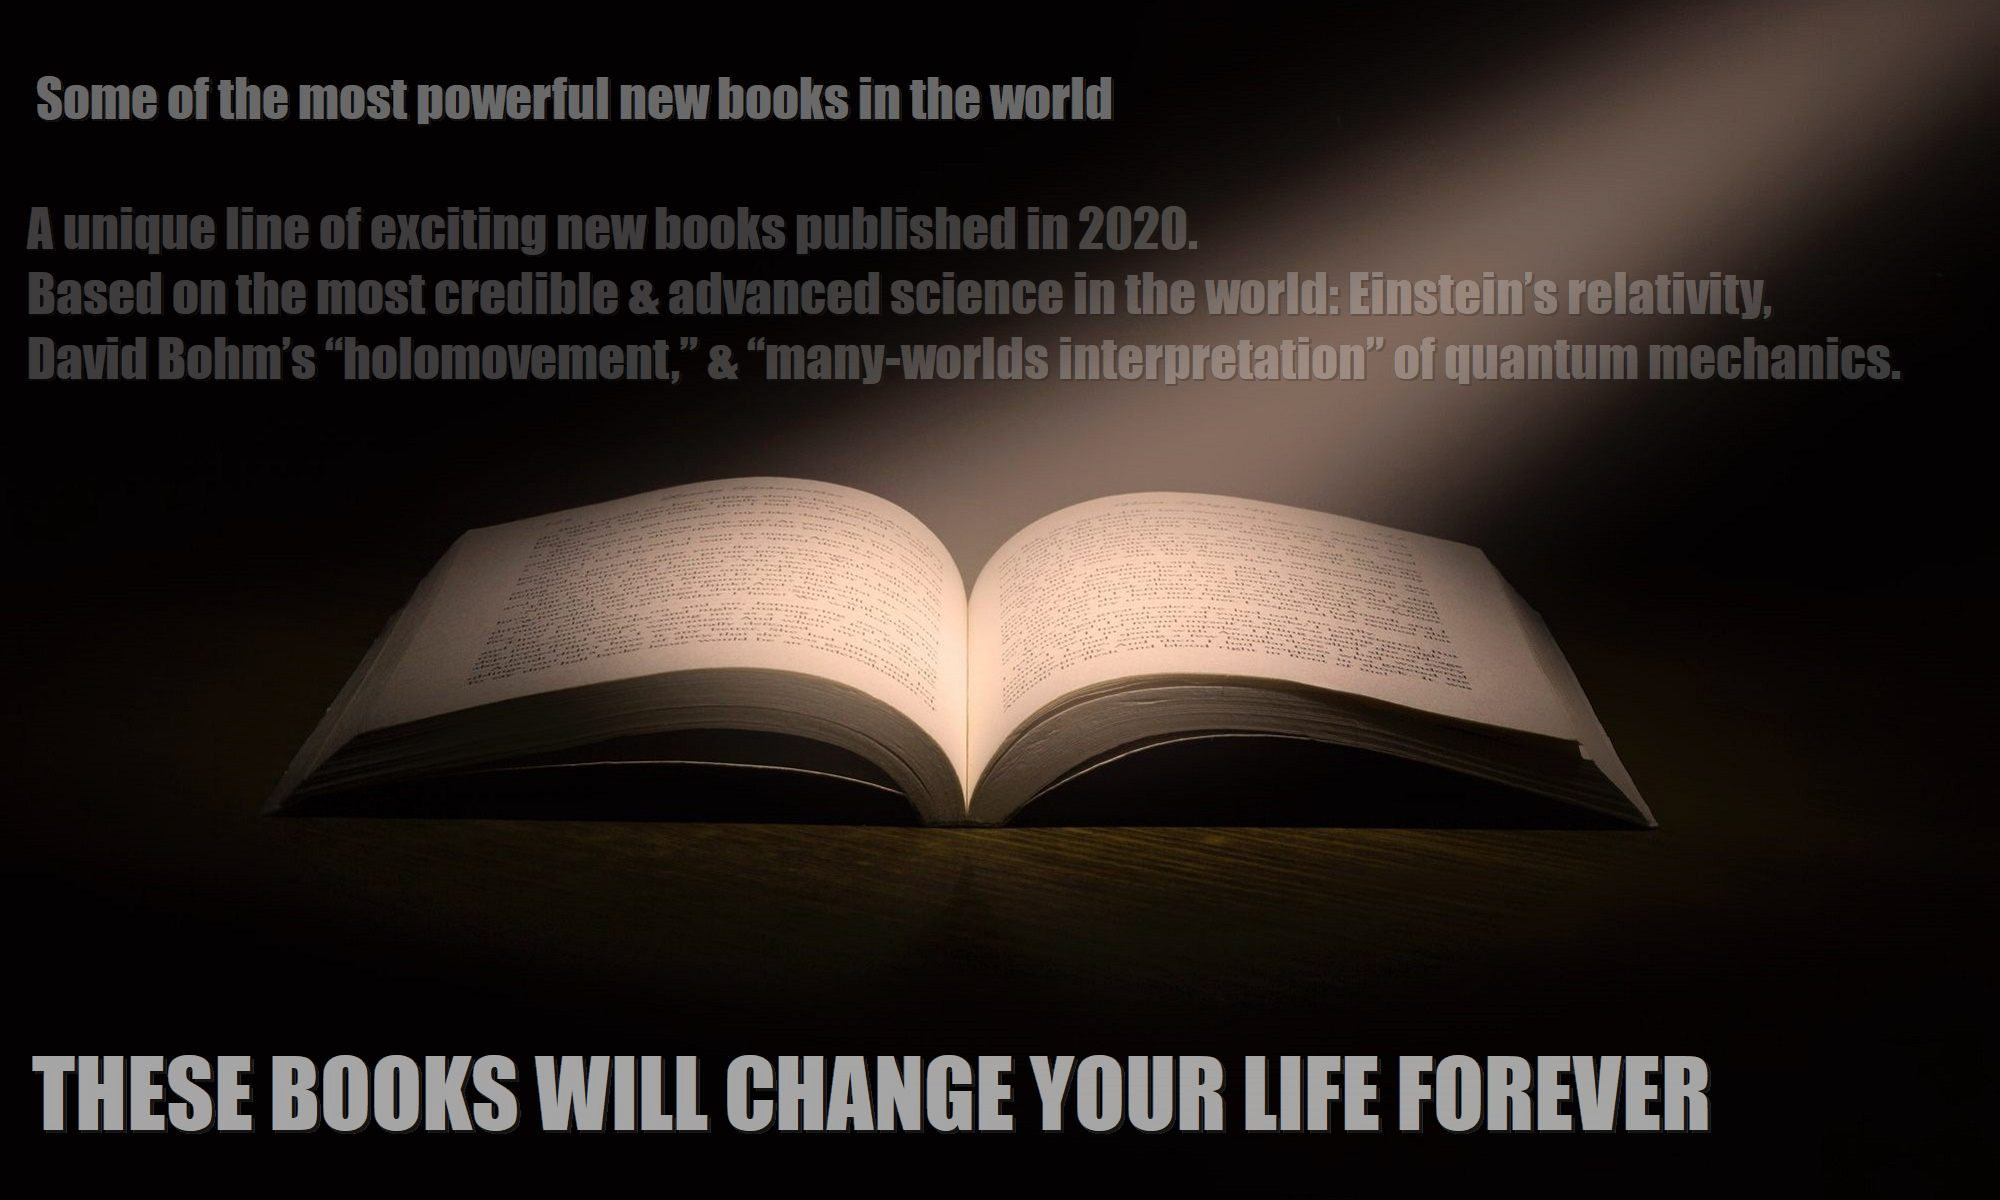 Magic-book-how-where-do-i-get-best-metaphysical-books-on-internet-buy-latest-new-age-mind-power-manifesting-releases-feature